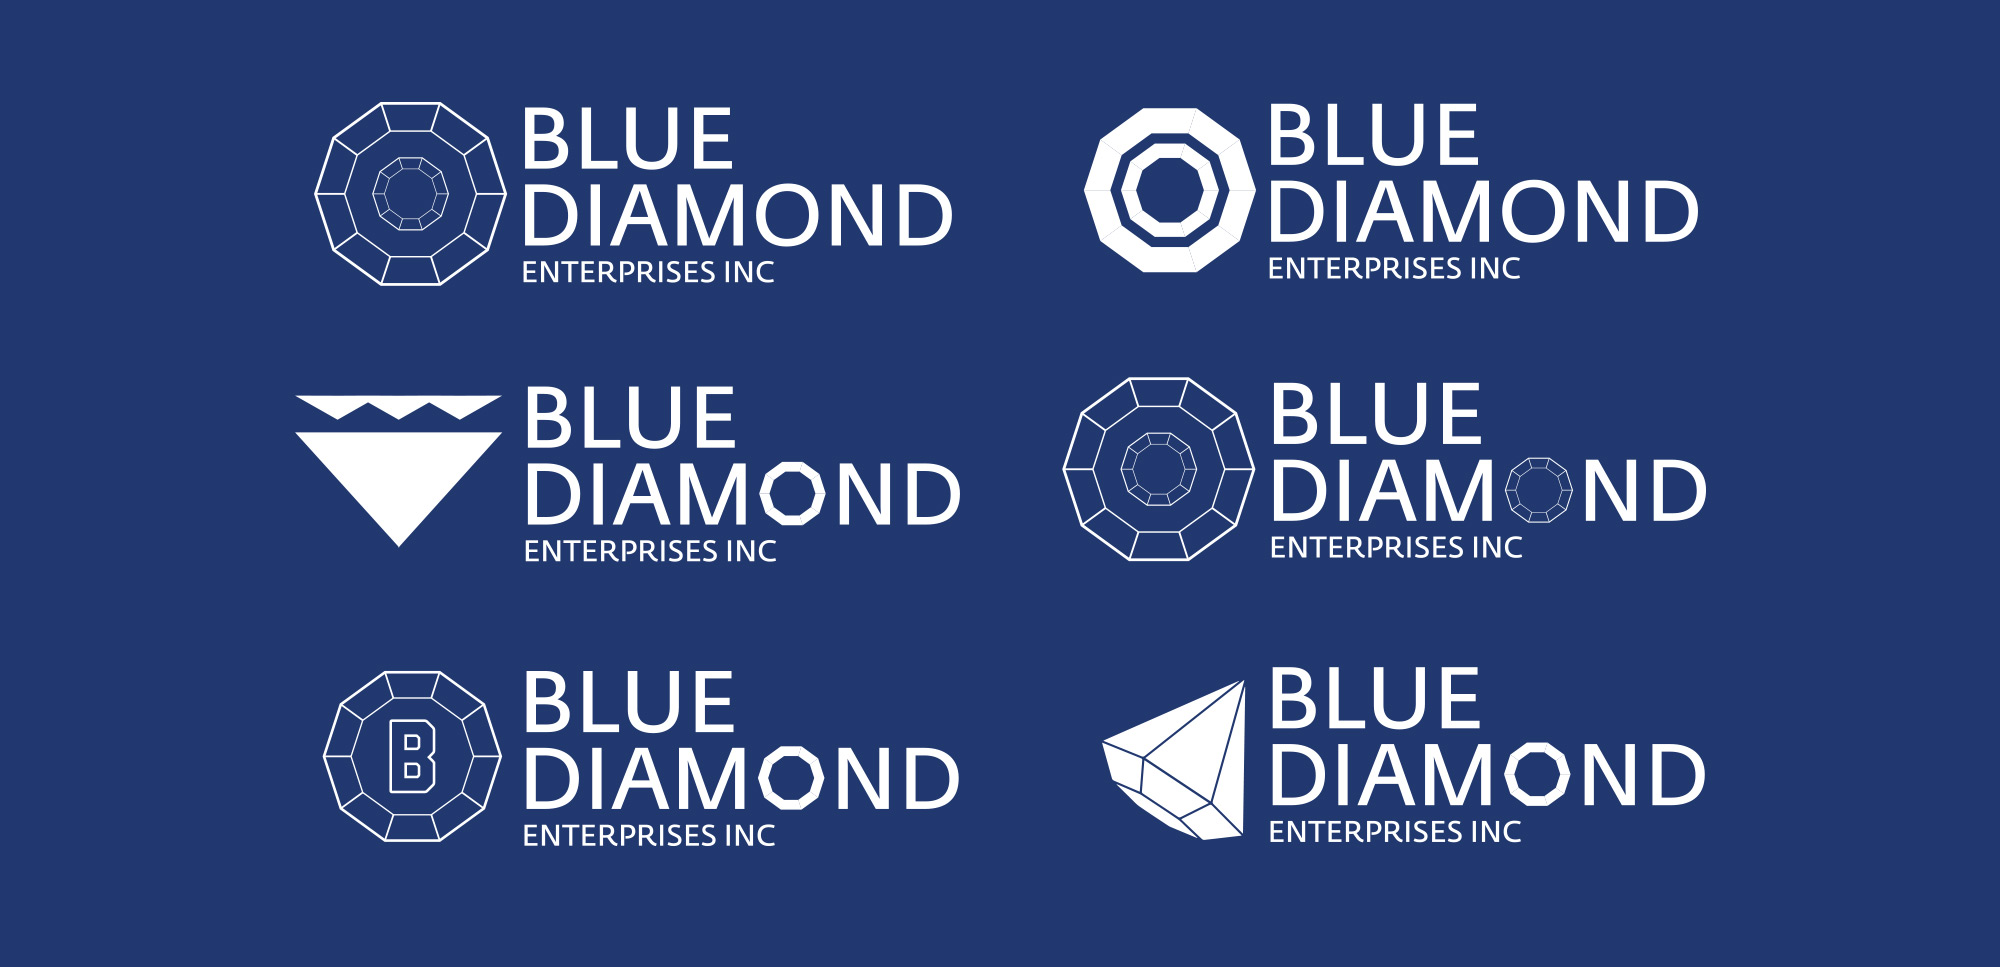 Blue Diamond Enterprise Branding - Rough